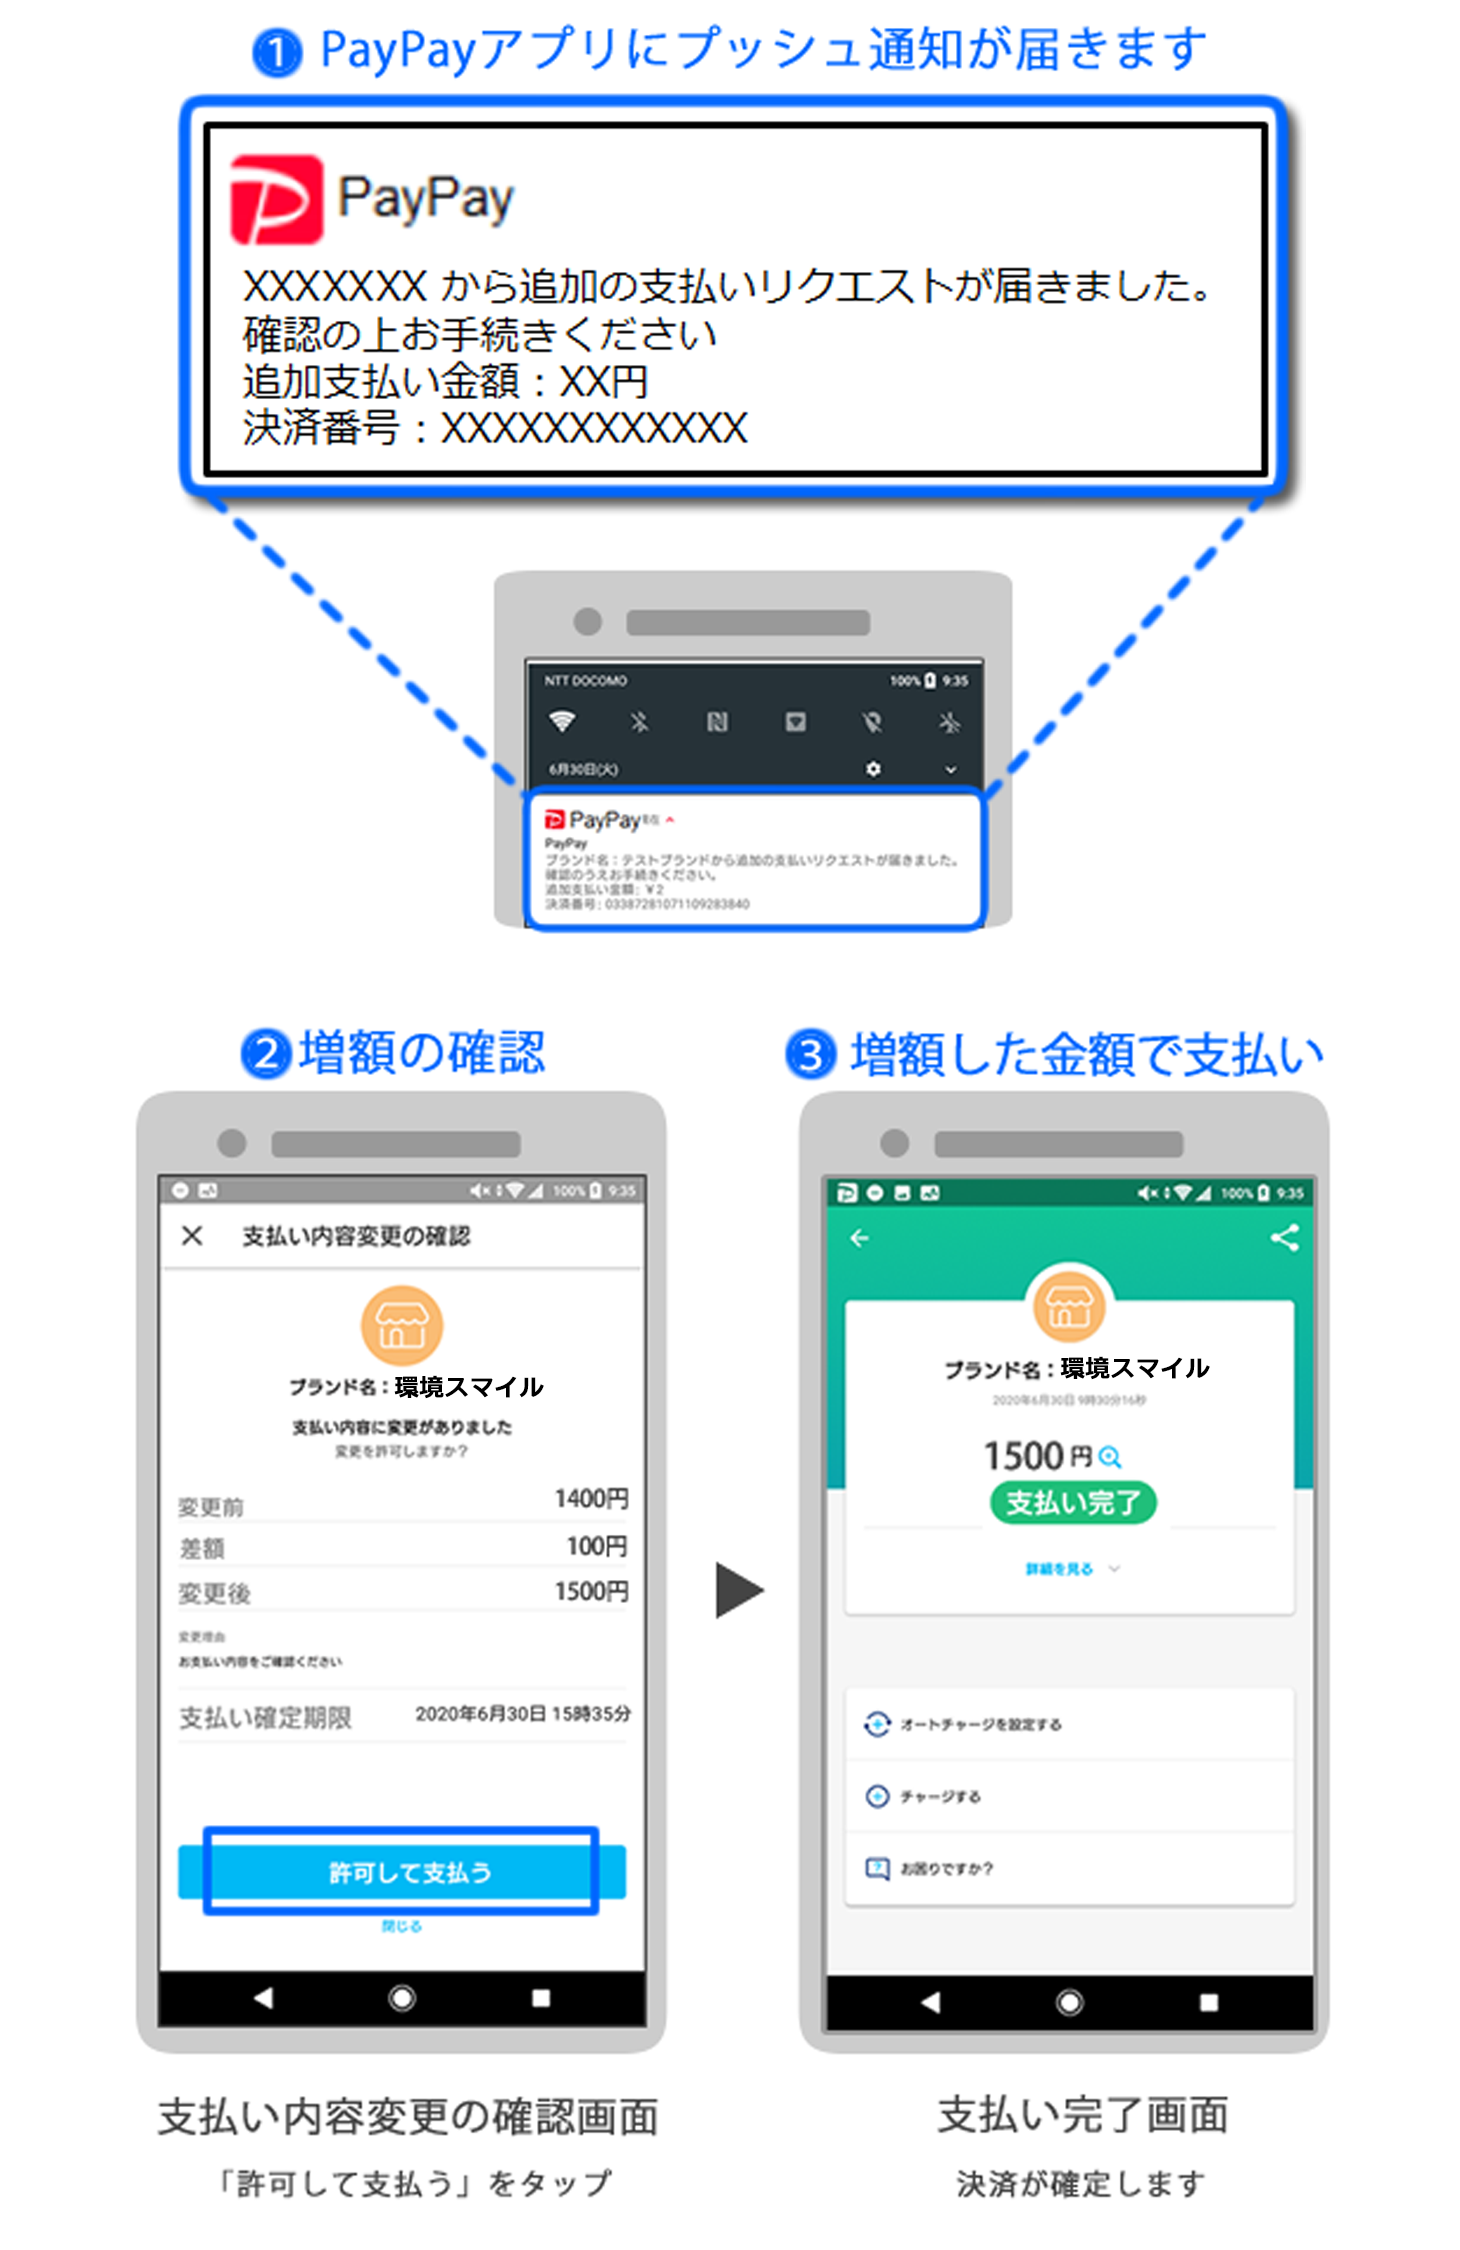 PayPay 増額について